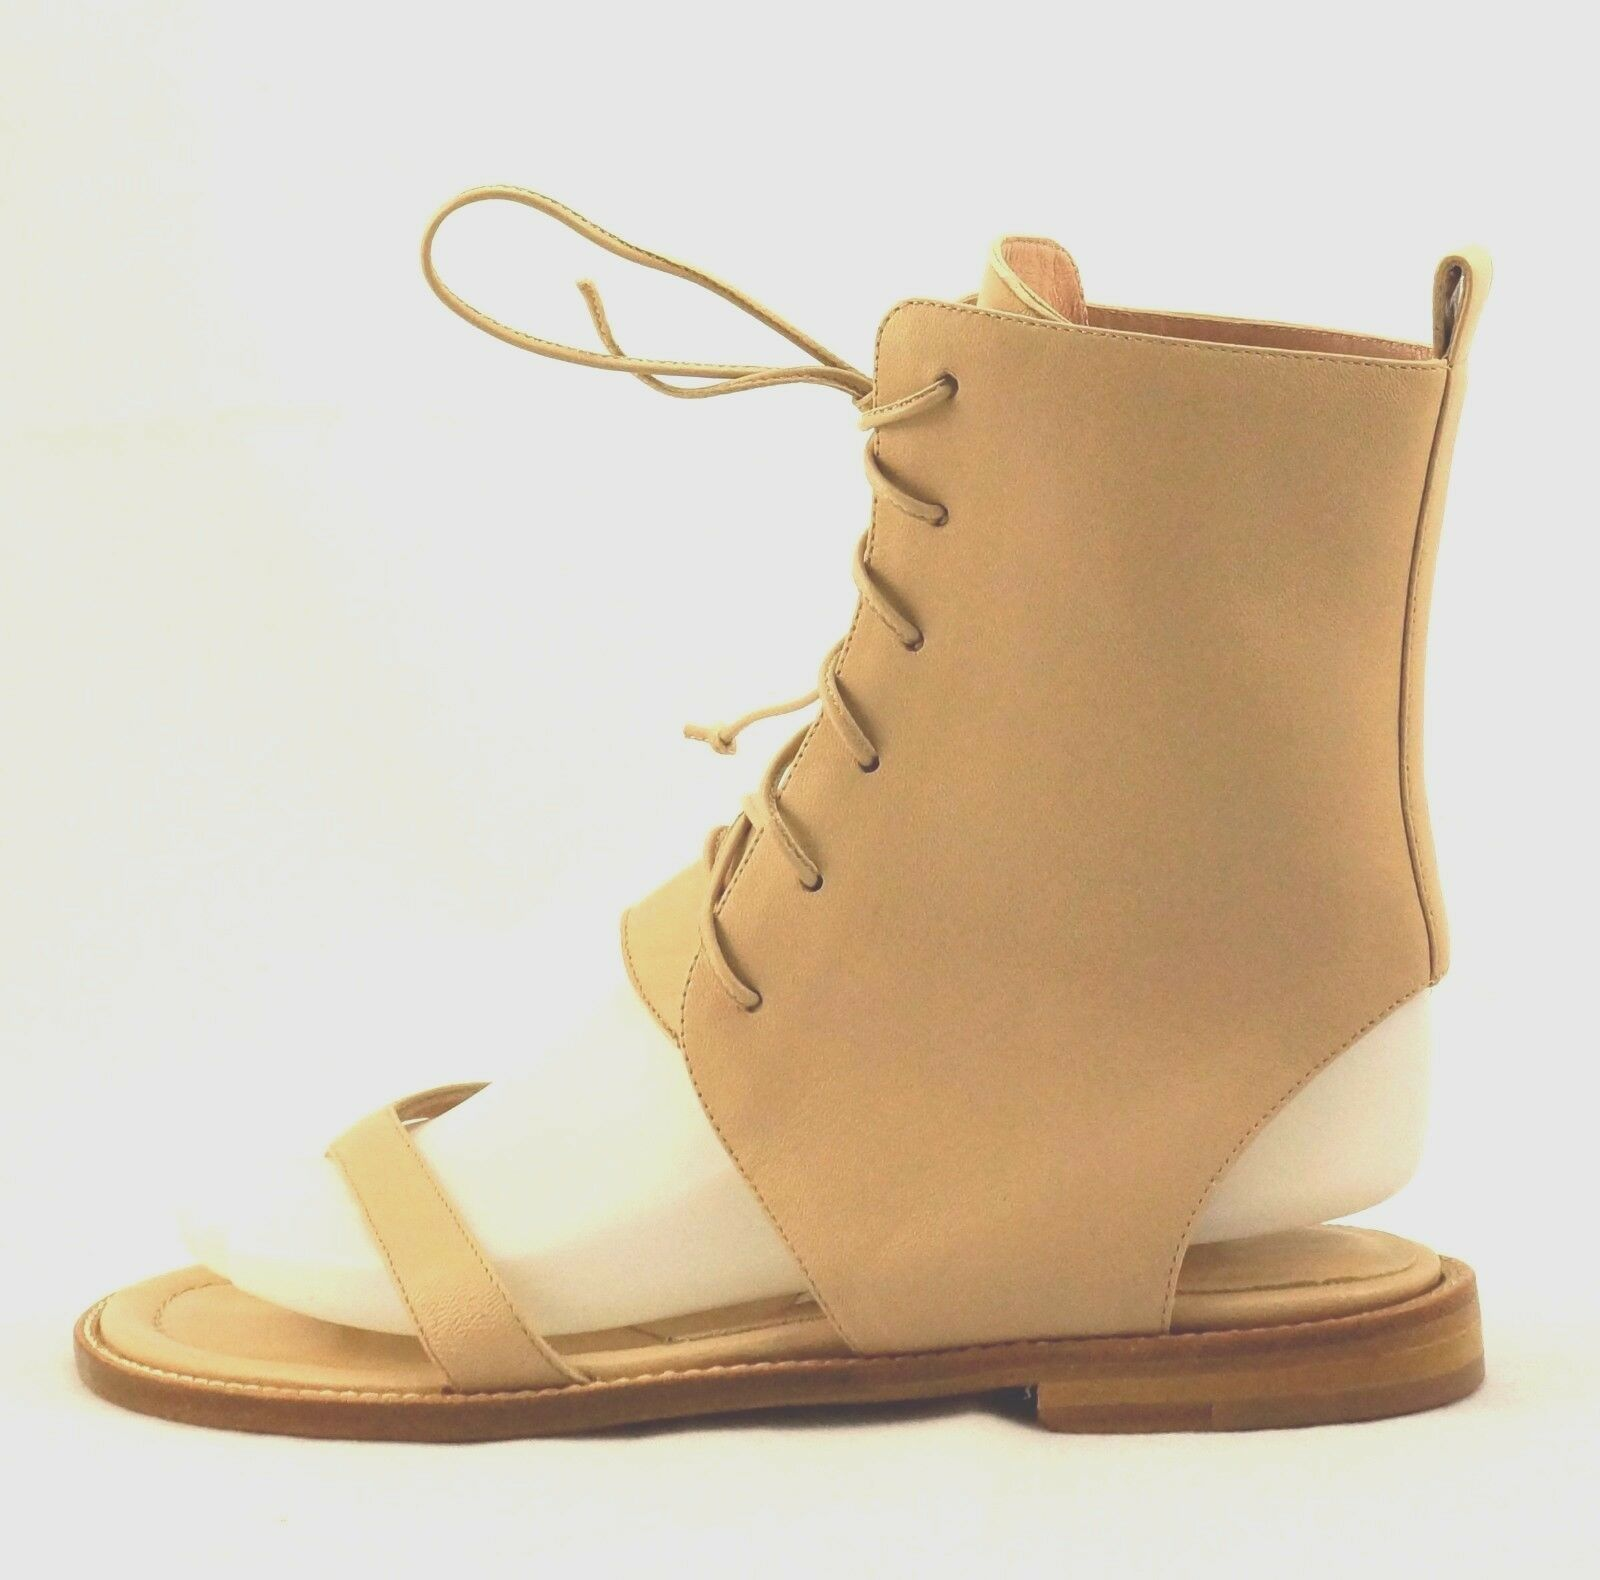 Manolo Blahnik Vestalpa Lace-up Nude Leather Thong Thong Thong Sandal Ankle Boots 36 New b5f1c0